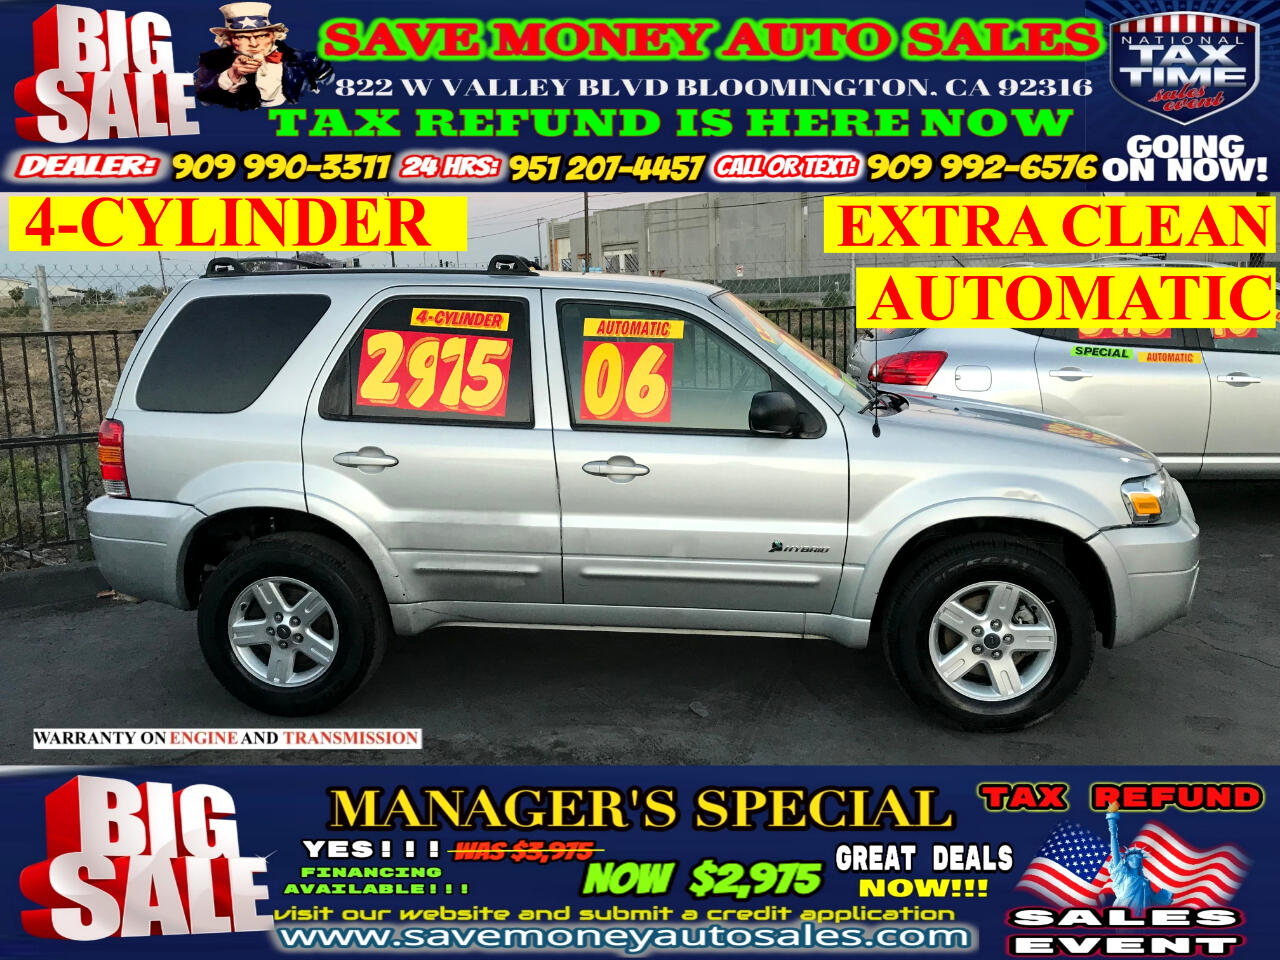 2006 Ford Escape Hybrid 4 CYLINDER> EXTRA CLEAN> AUTOMATIC